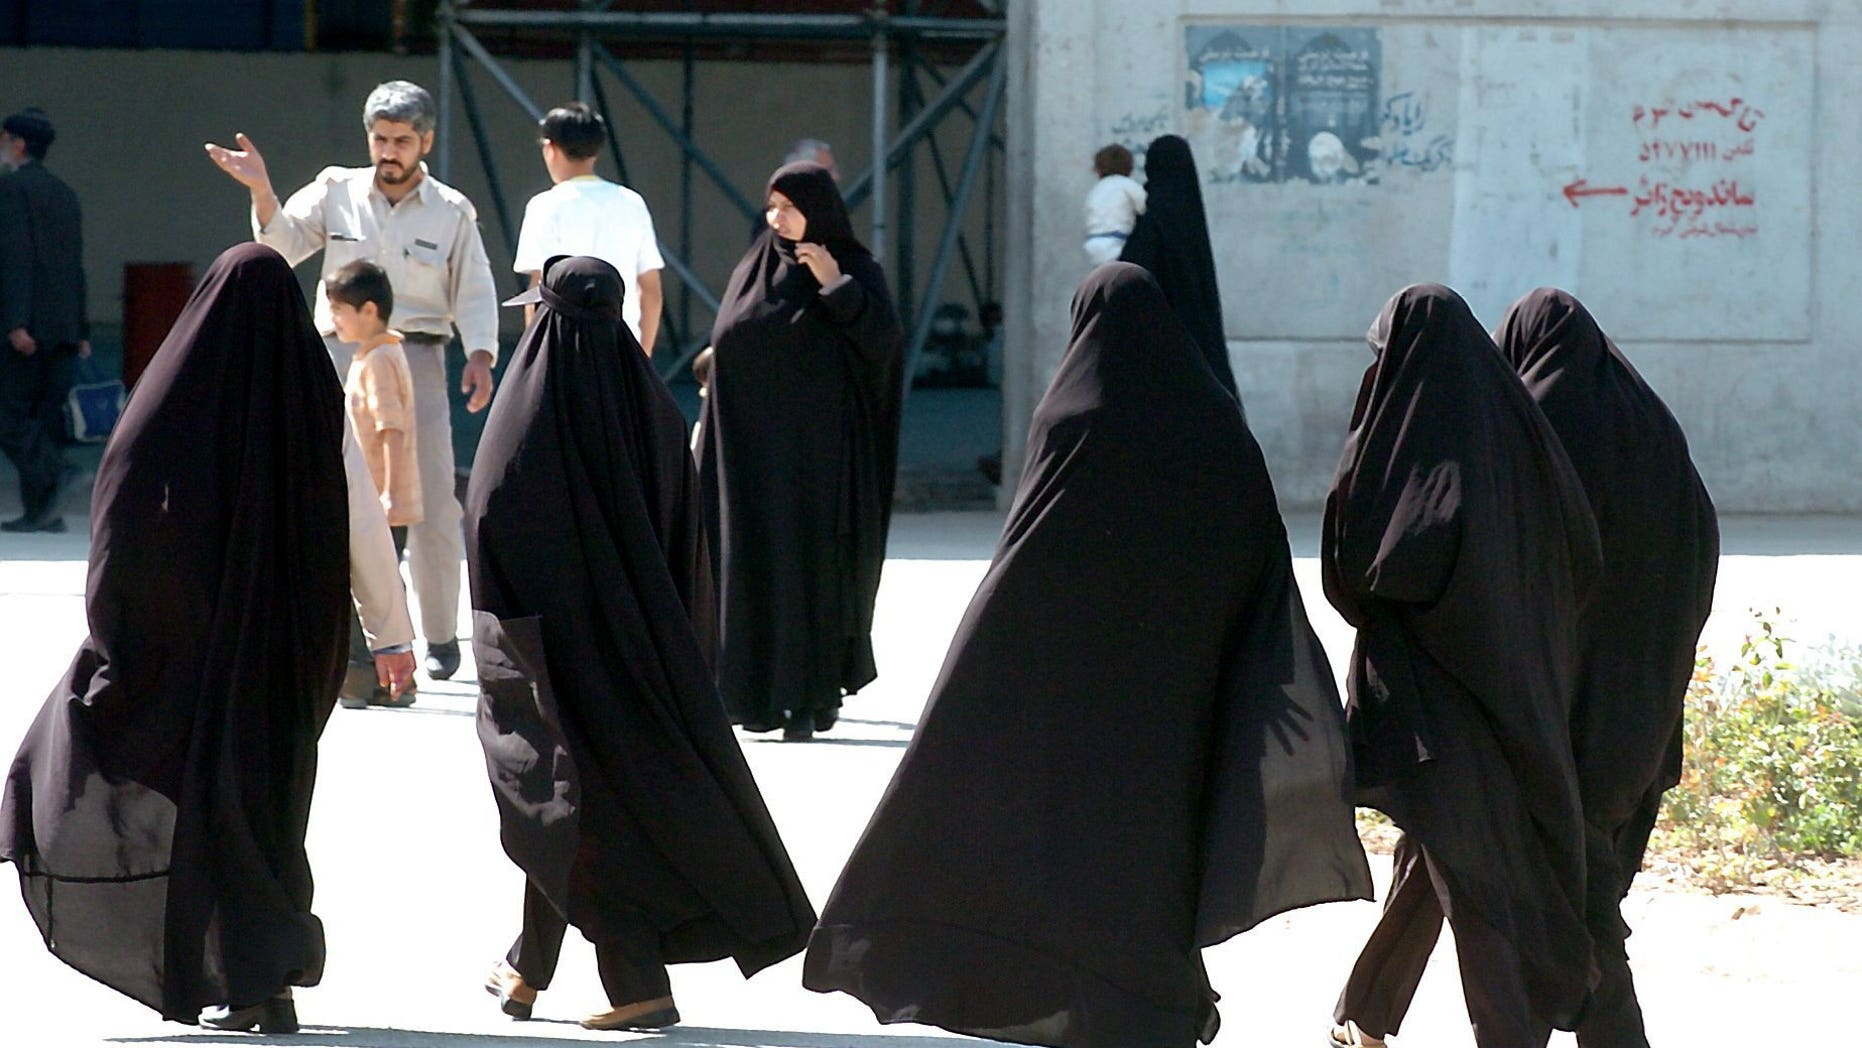 (dpa) - Irani women with headscarfs walk down a street in Tehran, the capital of Iran, 8 October 2004. Photo by: Bernd Weissbrod/picture-alliance/dpa/AP Images